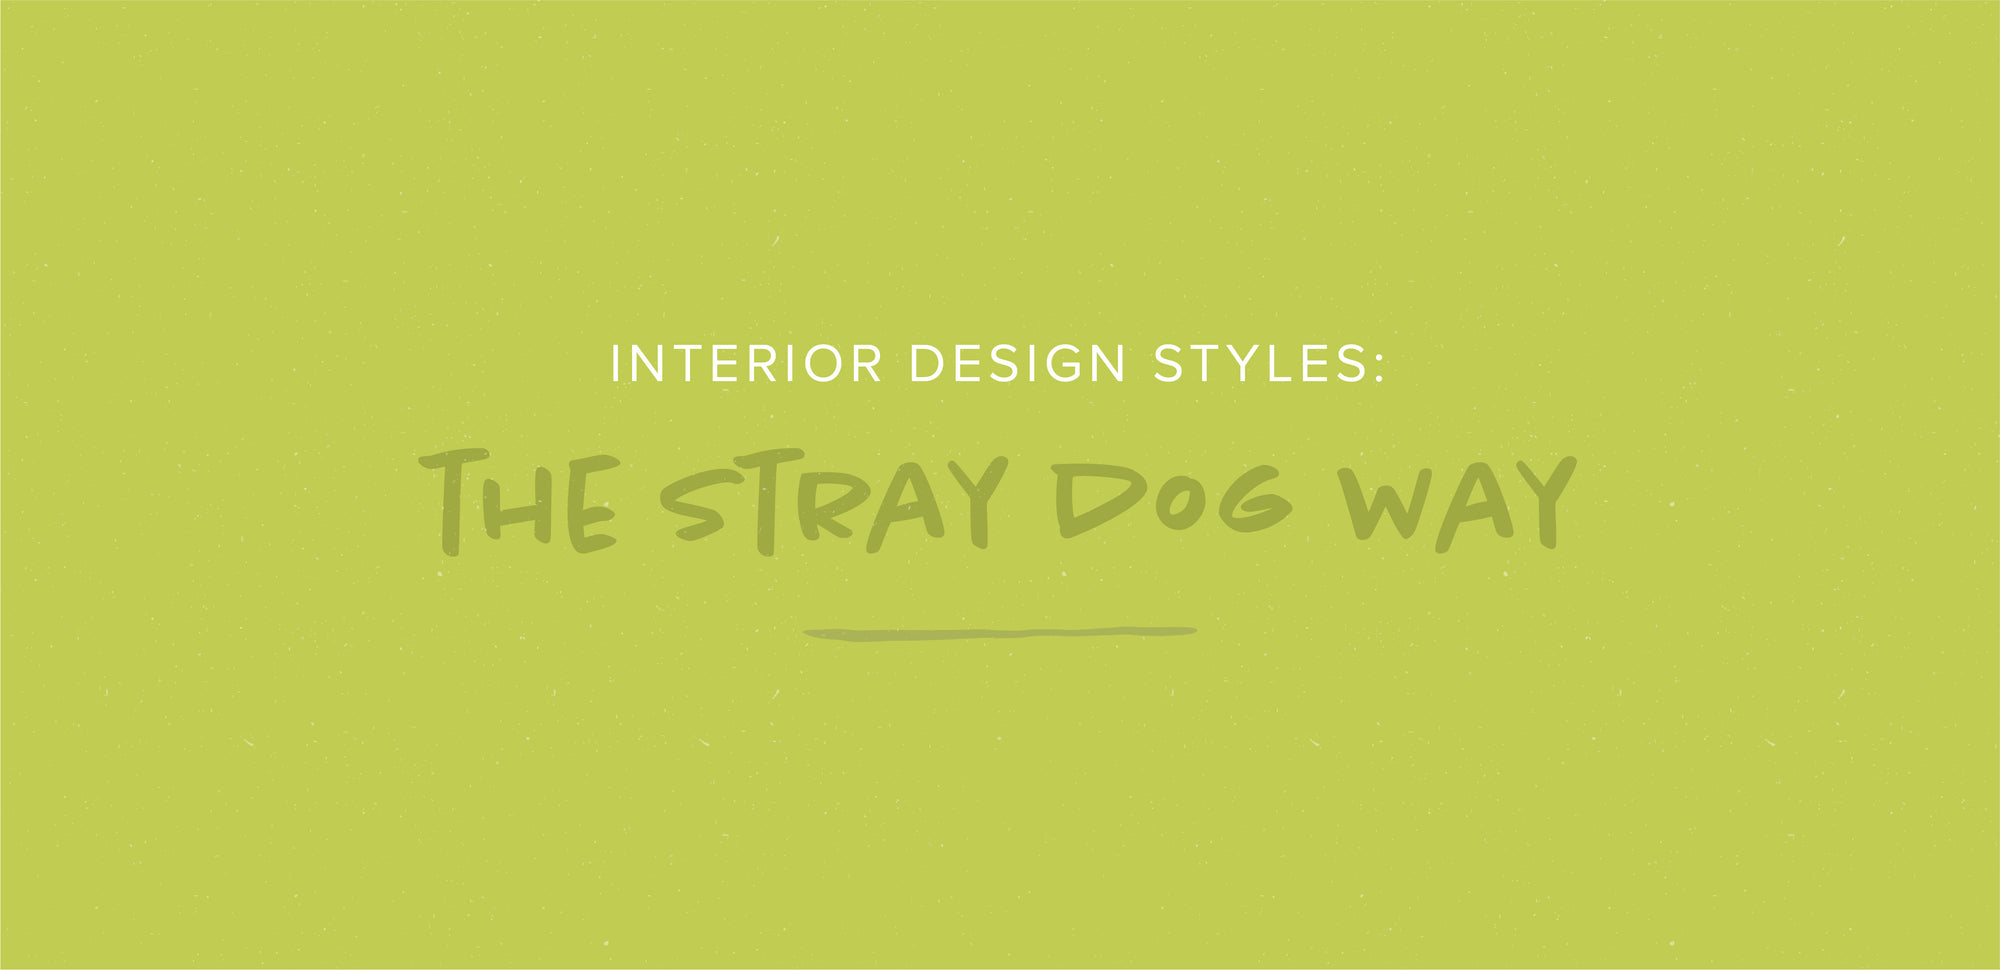 Interior Design Styles: The Stray Dog Way